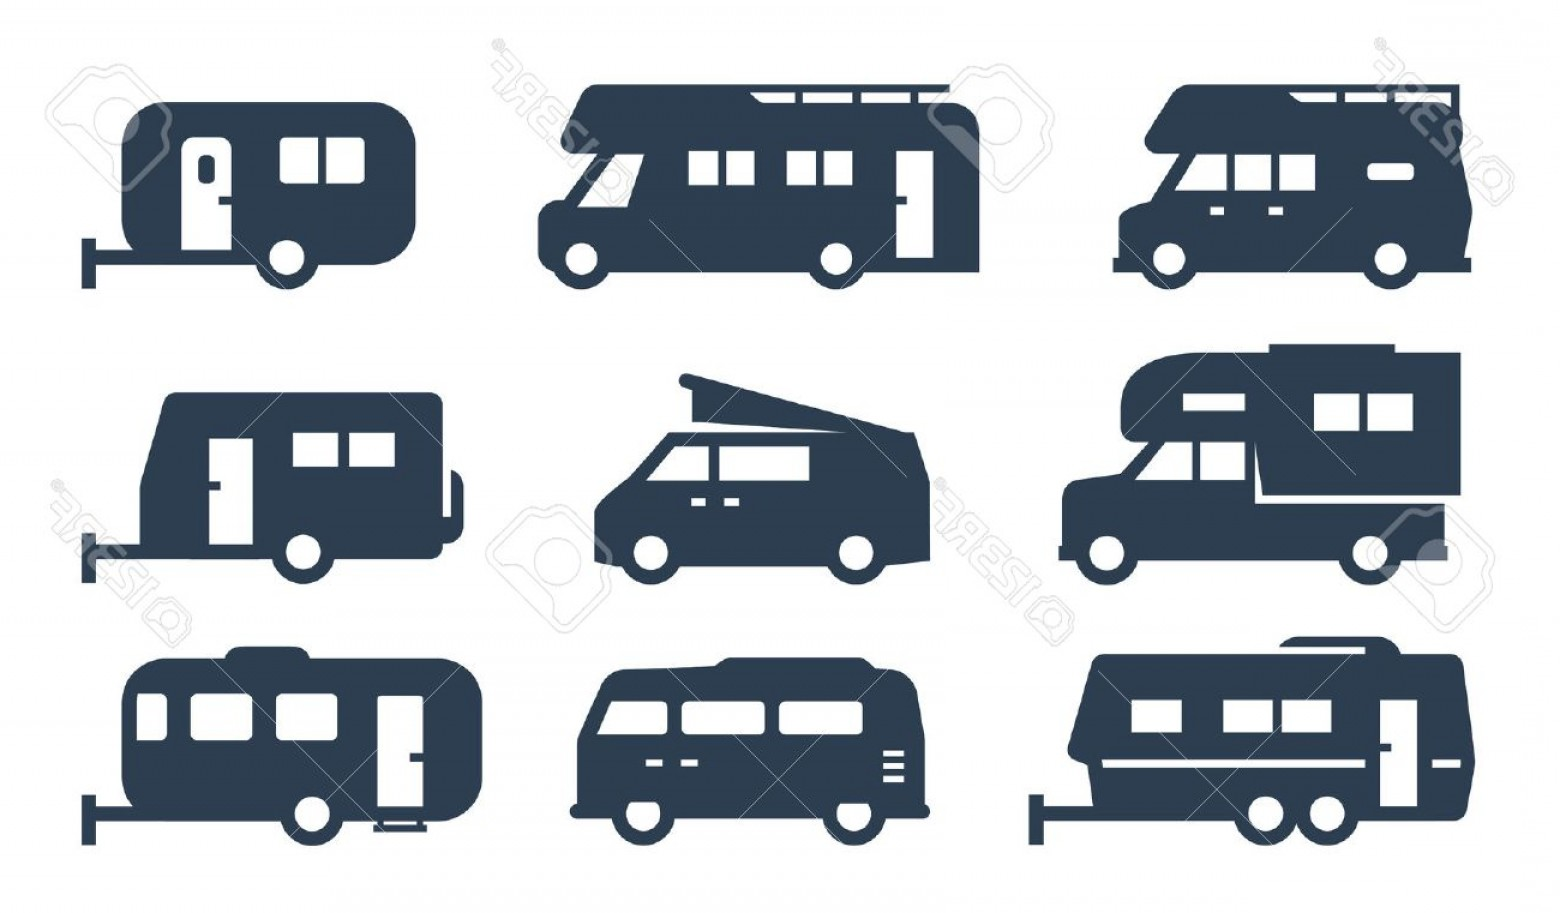 Vector Art RV Motorhomes: Photostock Vector Rv Cars Recreational Vehicles Camper Vans Icons